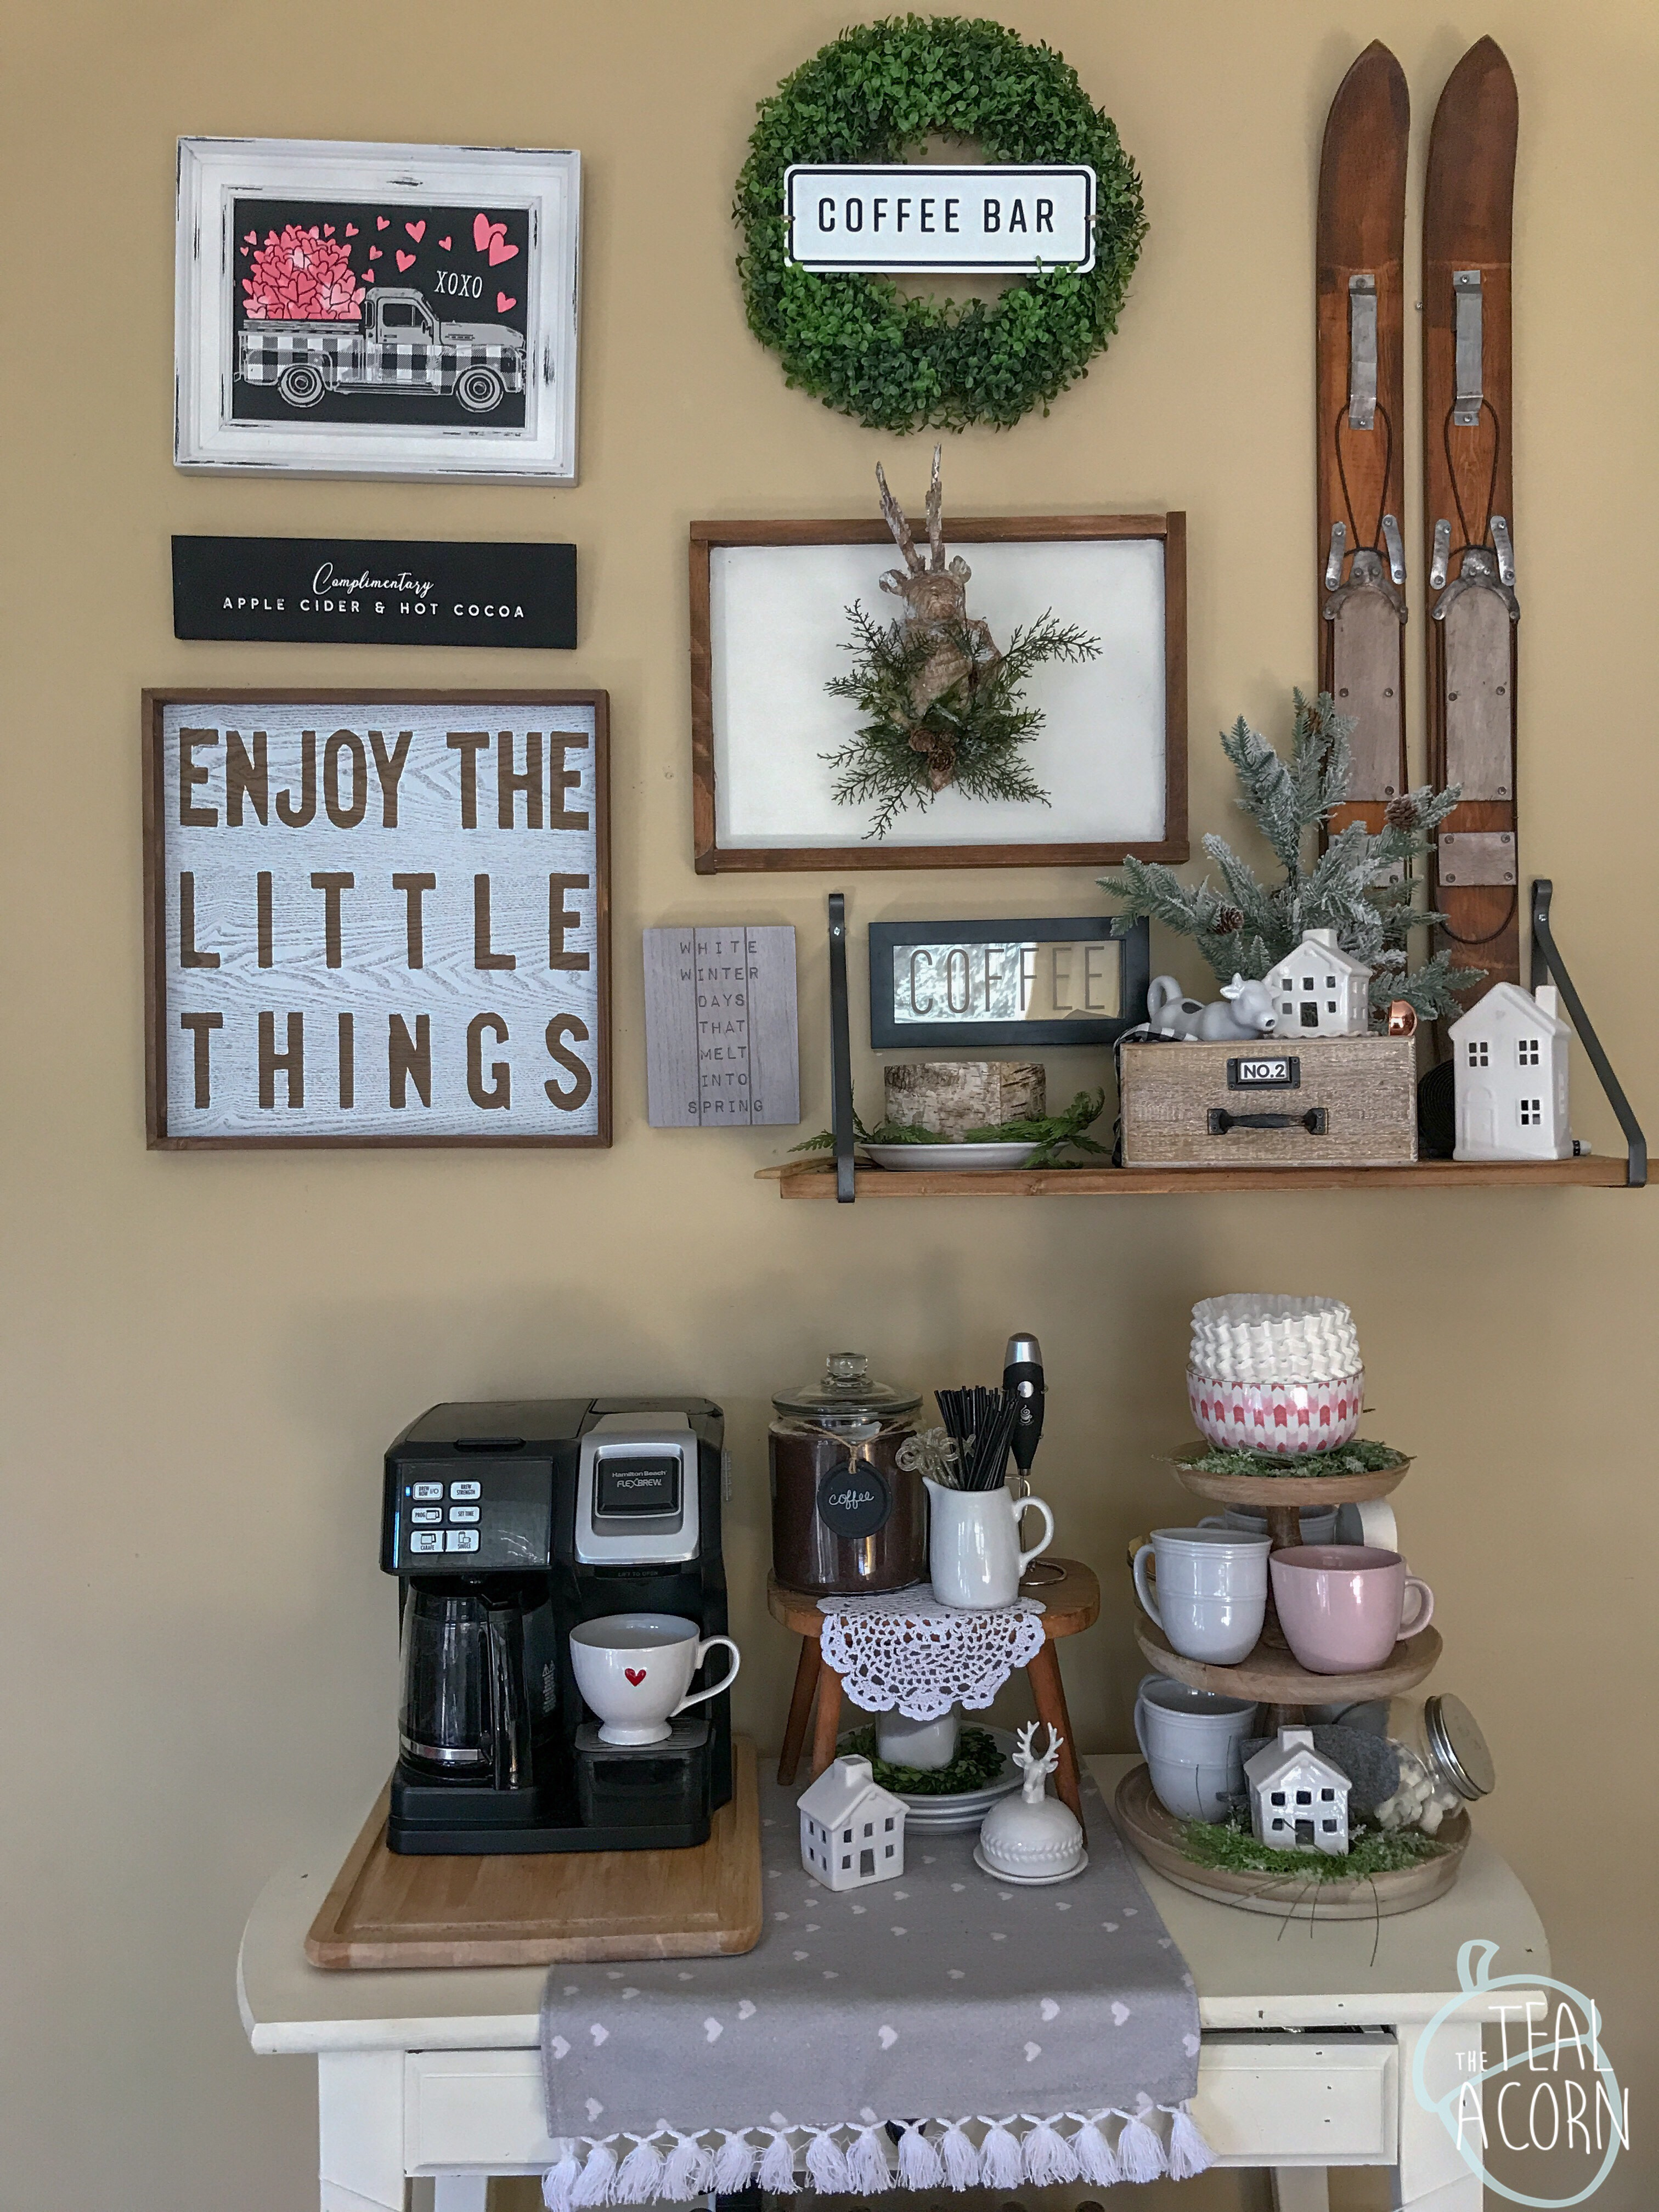 Valentine's Day Decor themed gallery wall above a coffee bar. Valentine's Day decor is pale grey and blush pink.